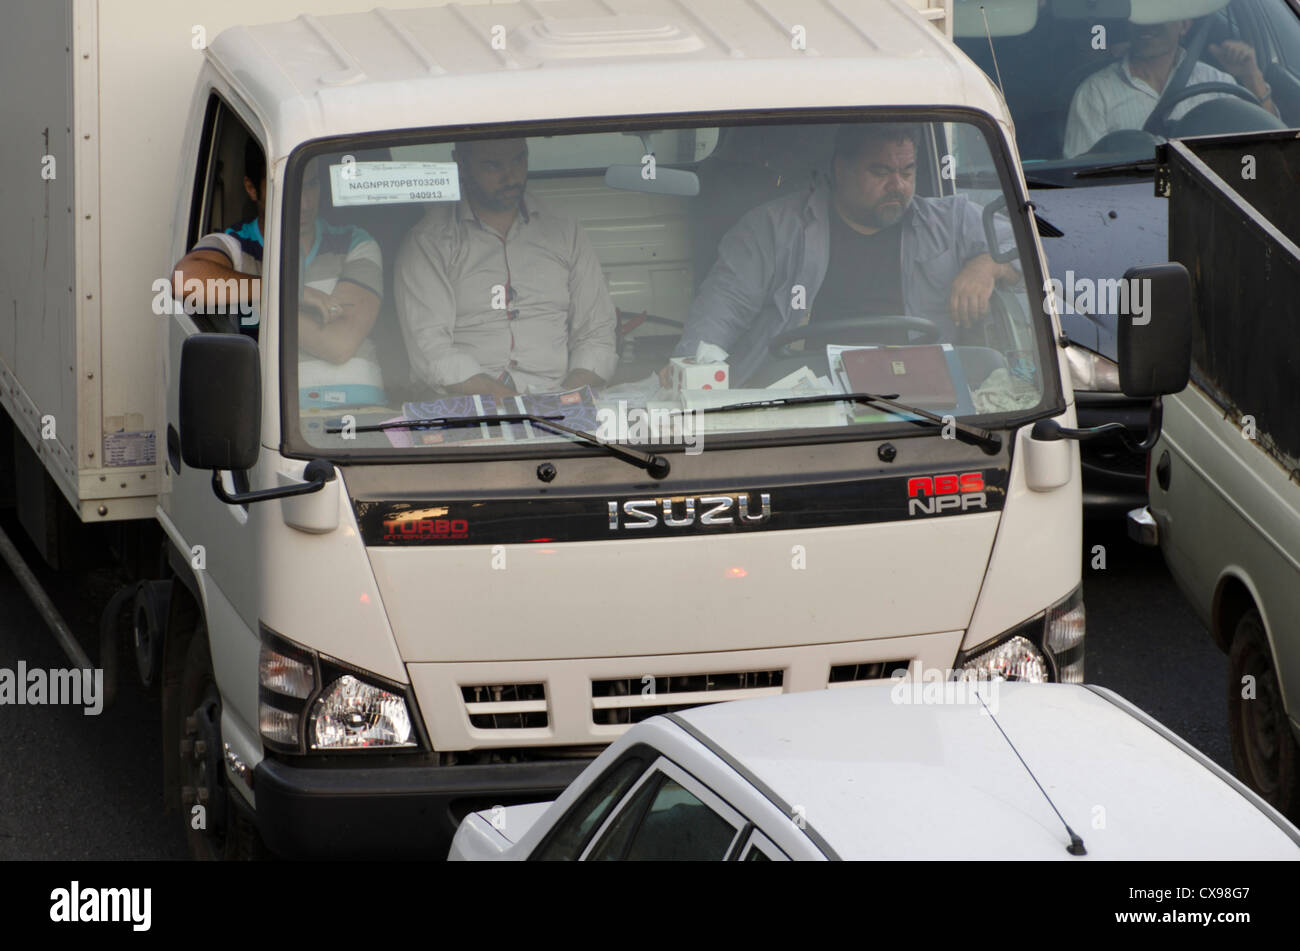 A truck driver and two passengers stuck in traffic jam in Tajrish, Tehran, Iran - Stock Image